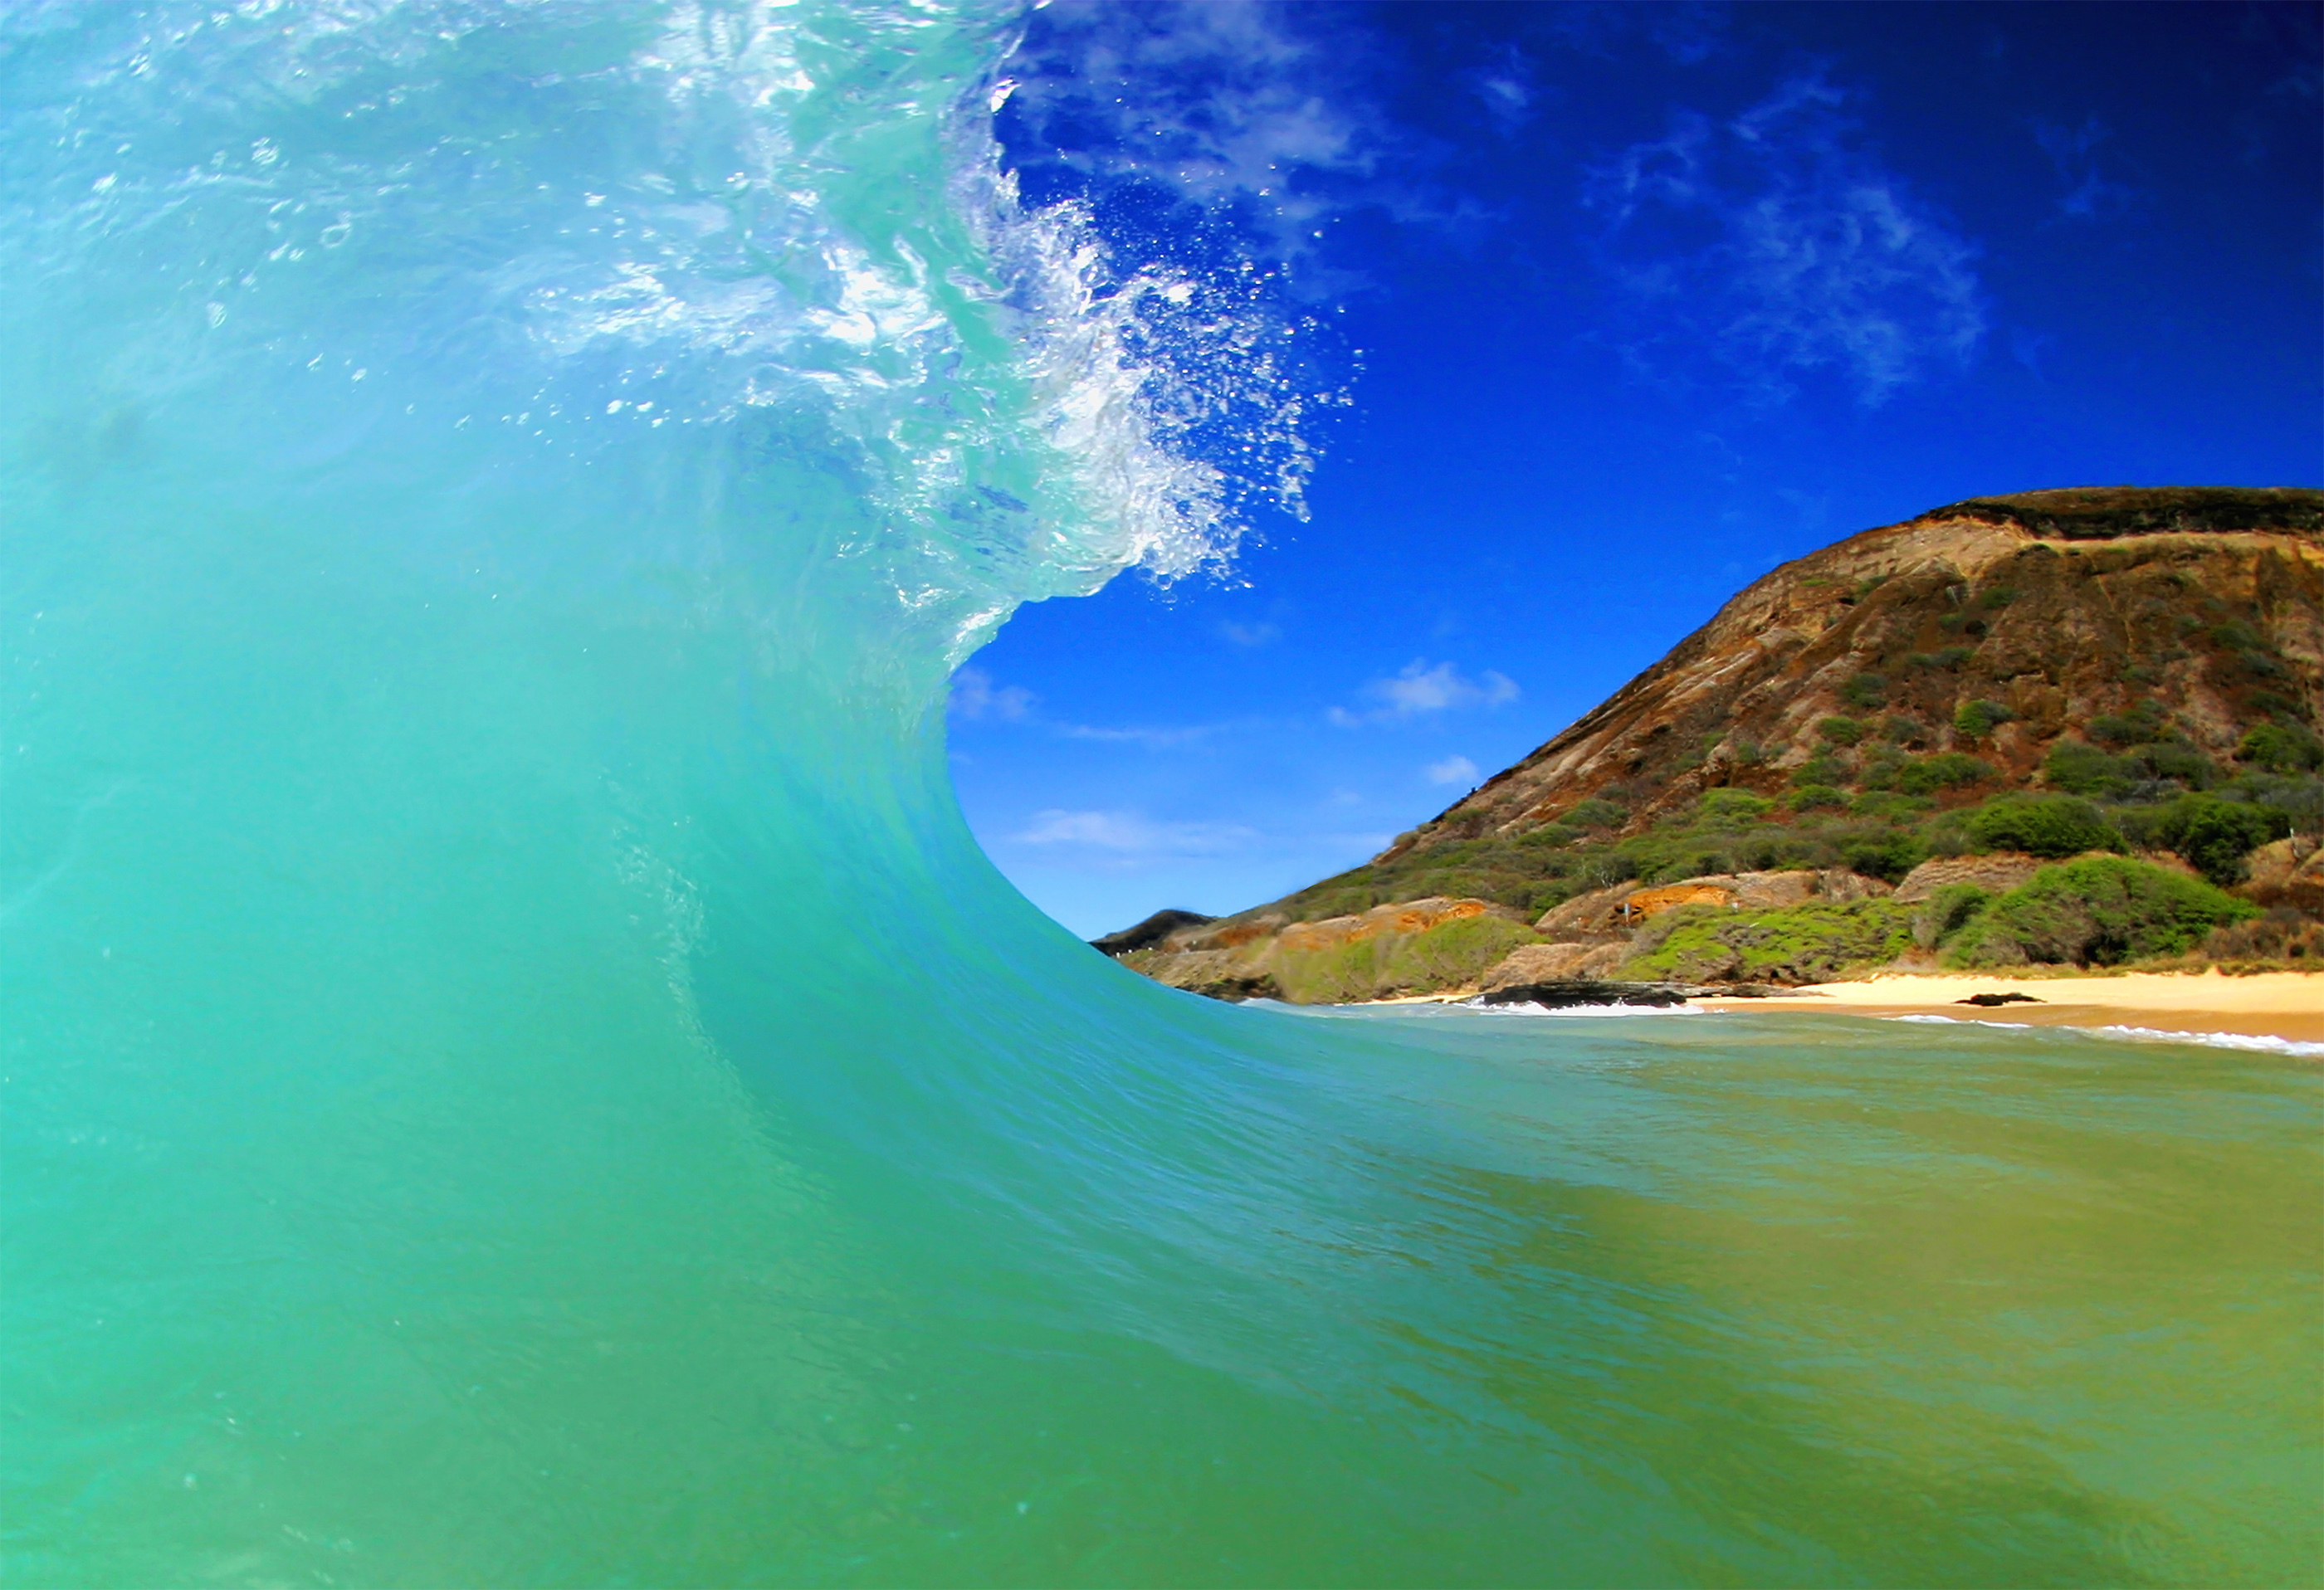 20855 download wallpaper Landscape, Sea, Waves, Beach screensavers and pictures for free